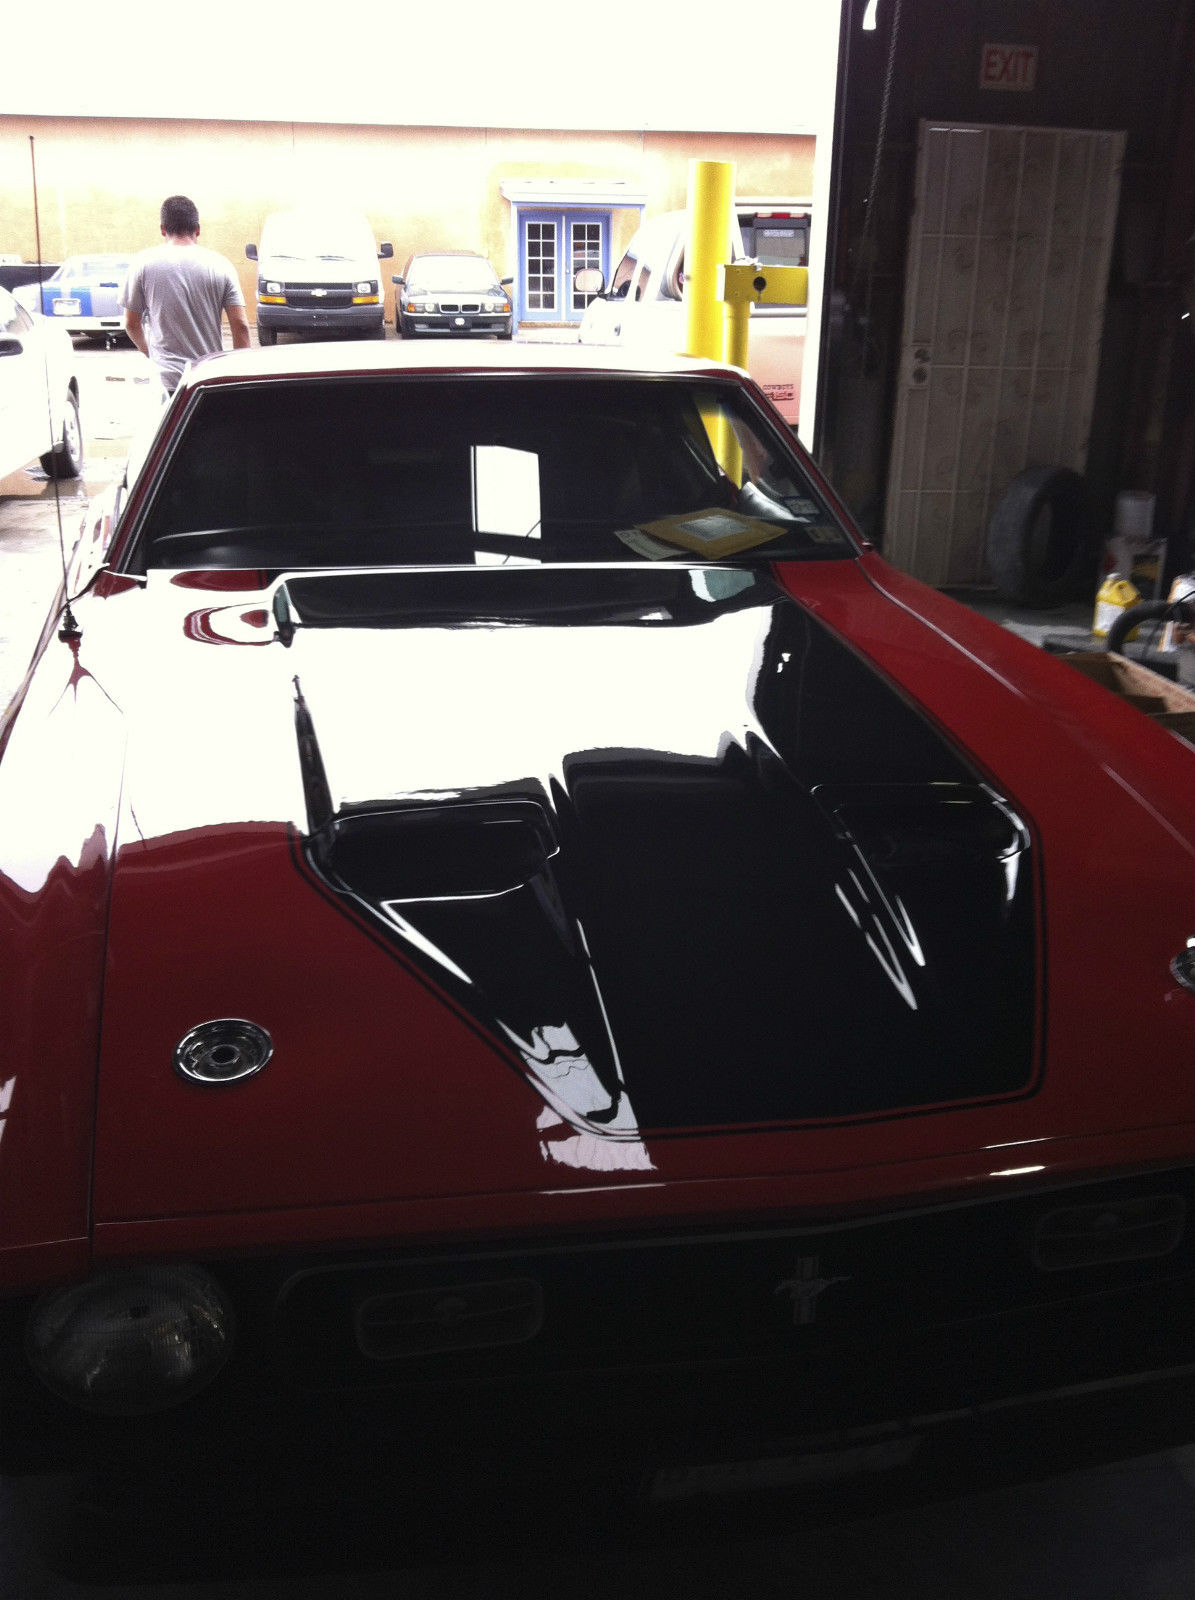 1972 ford mustang mach 1 351 c high performance completed restored. Black Bedroom Furniture Sets. Home Design Ideas